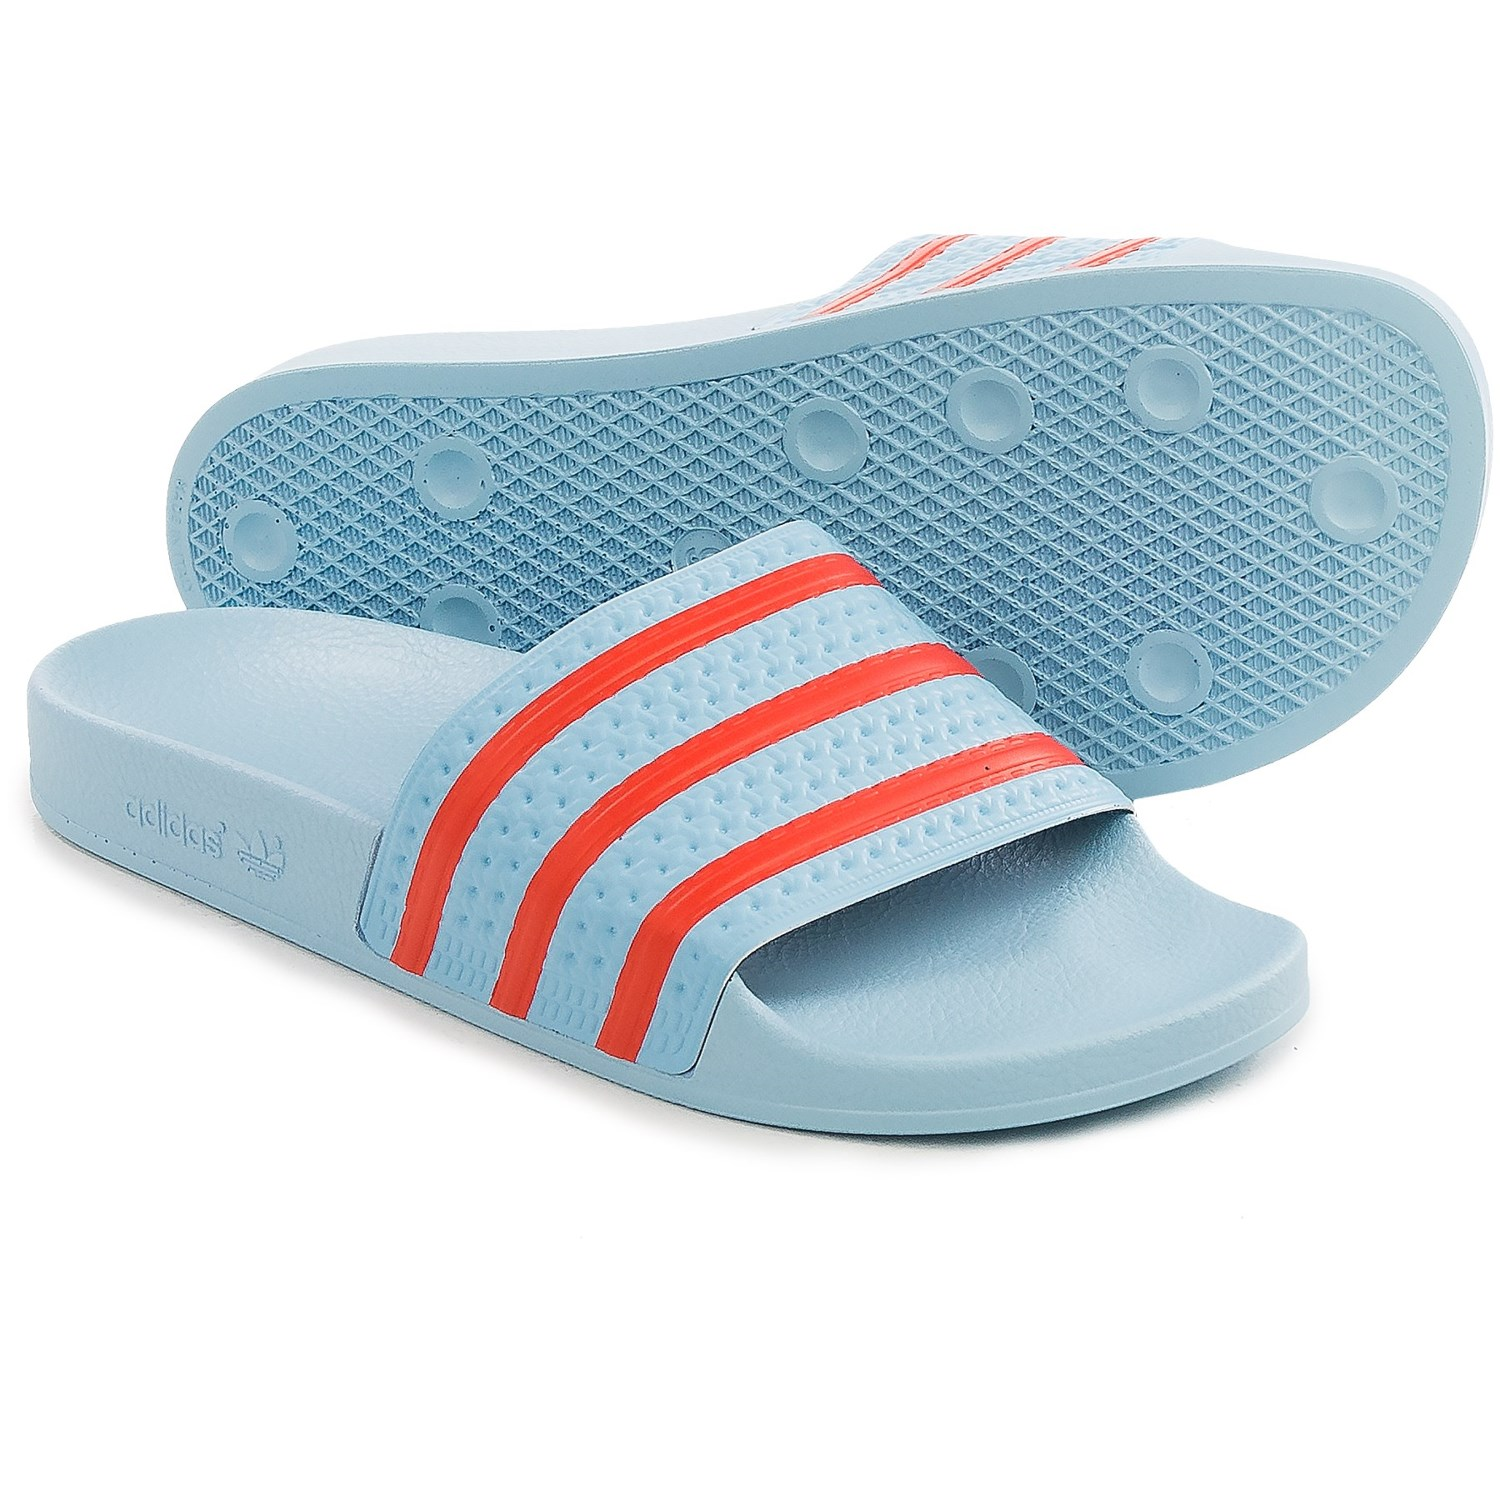 adidas adilette sandal gummy Eligible for Free Shipping and Free. Adidas Men's adidas five finger shoes ...